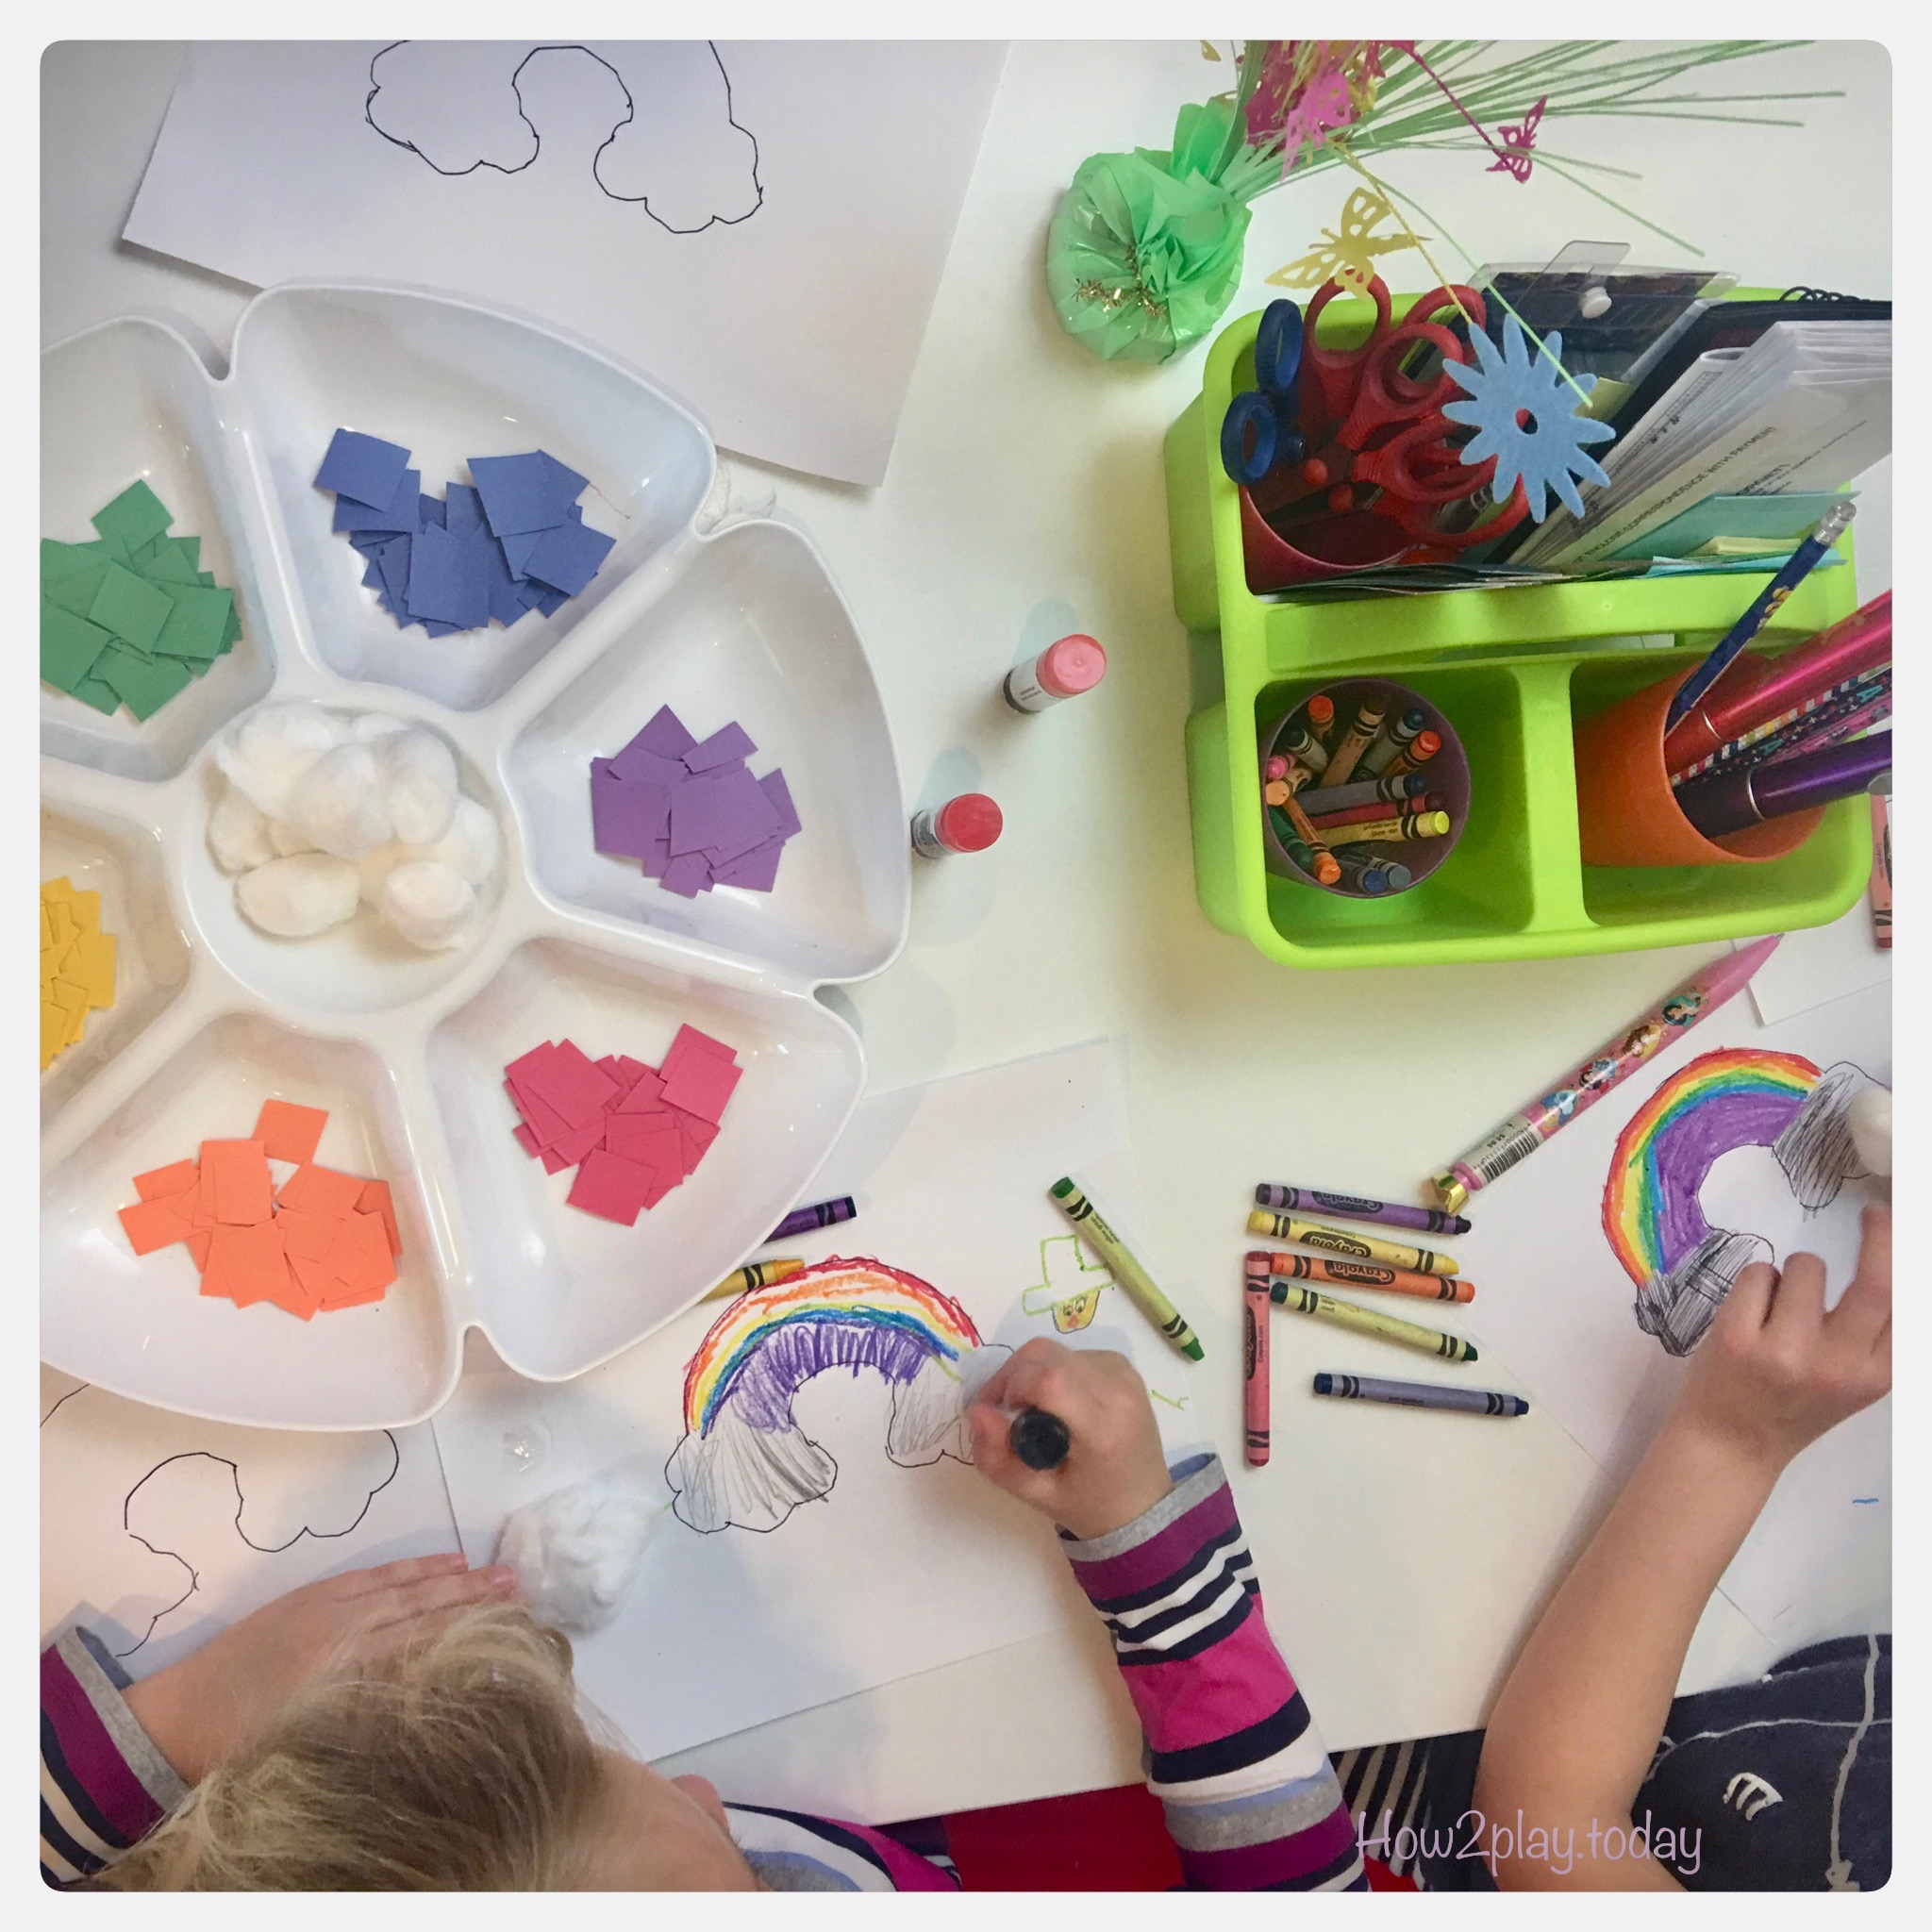 Rainbow art is fun for St Patrick's Day, weather study unit or just to explore with colors.